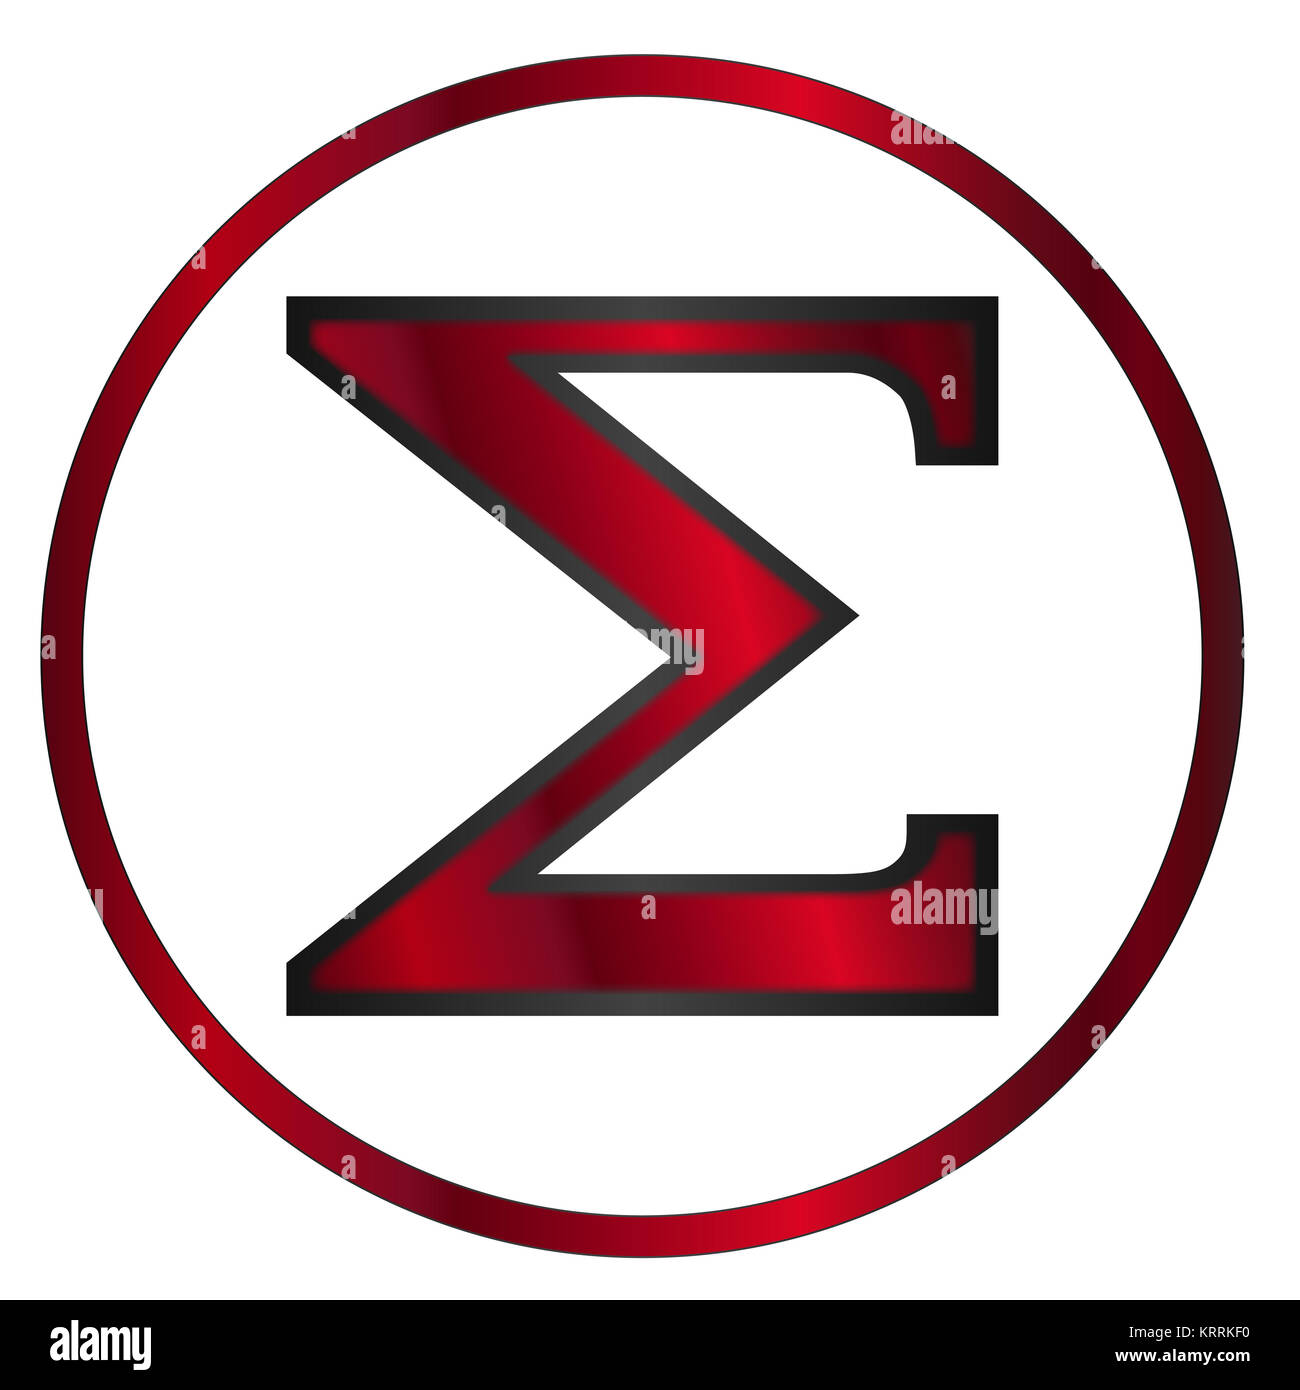 Sigma symbol stock photos sigma symbol stock images alamy sigma greek letter stock image buycottarizona Image collections